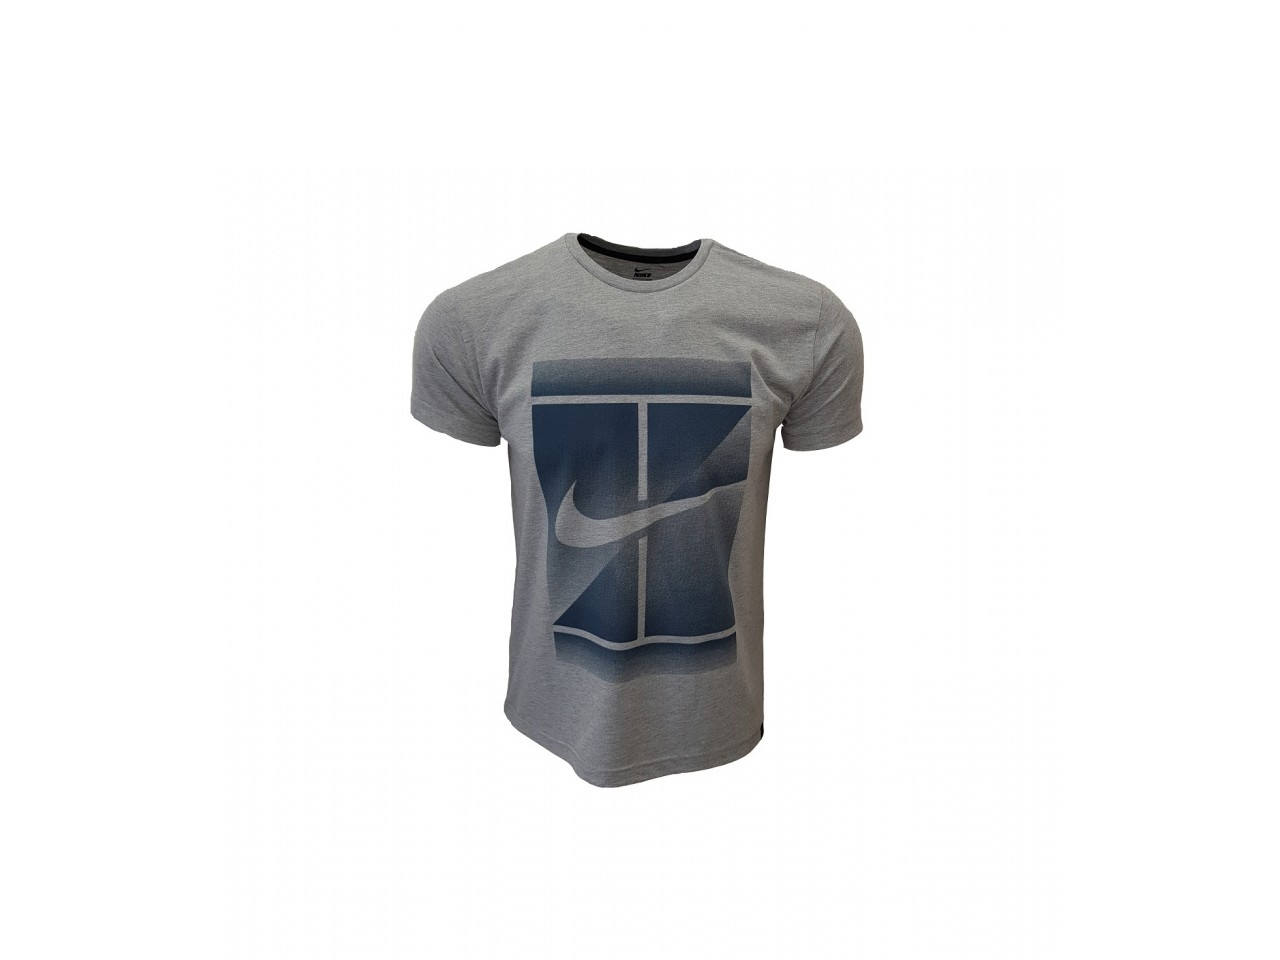 Nike T-Shirt Tennis Court Light Grey